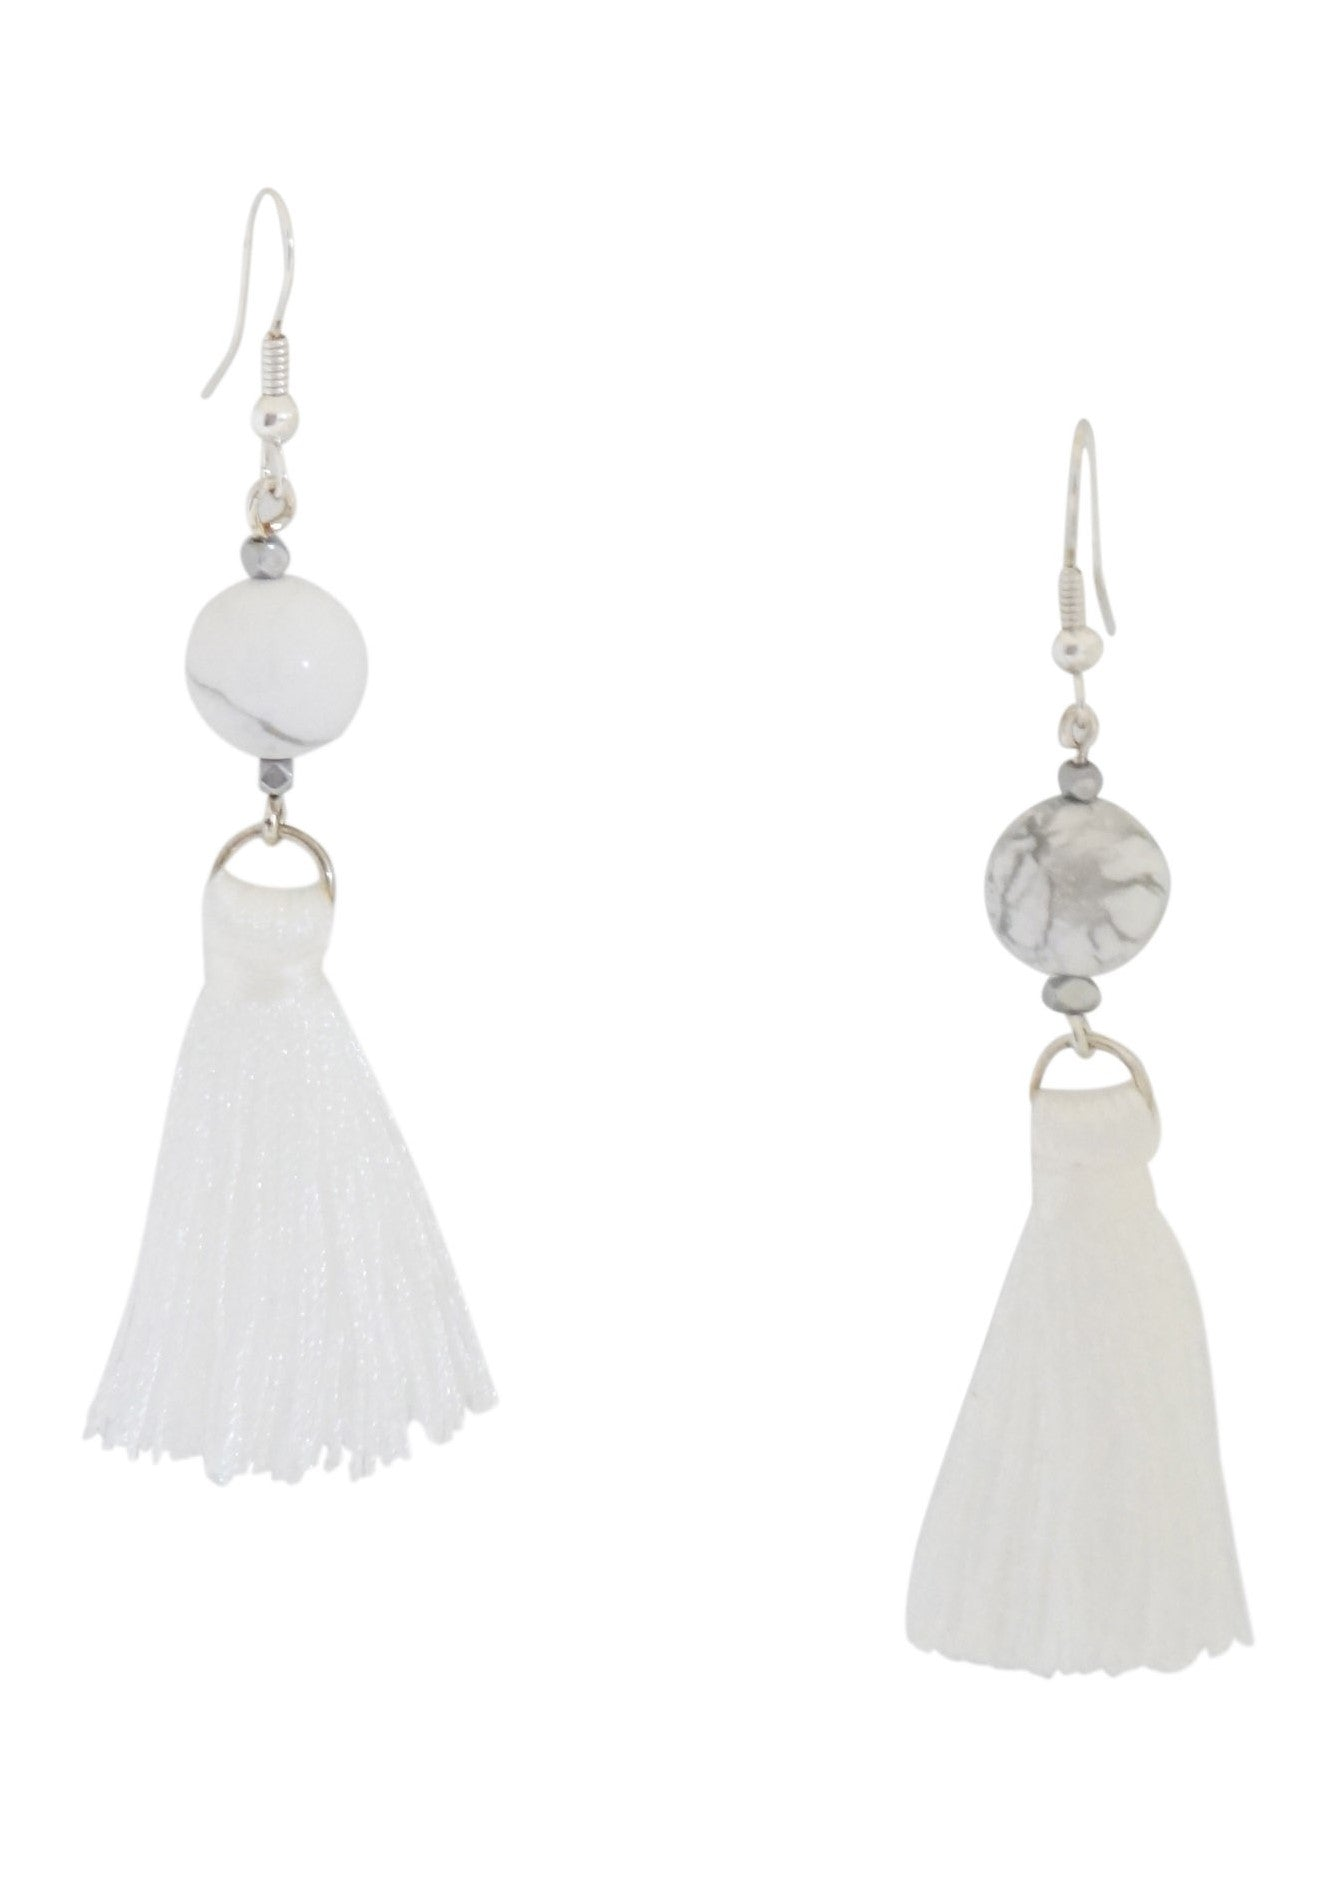 Serene Earrings - Carolyn Hearn Designs